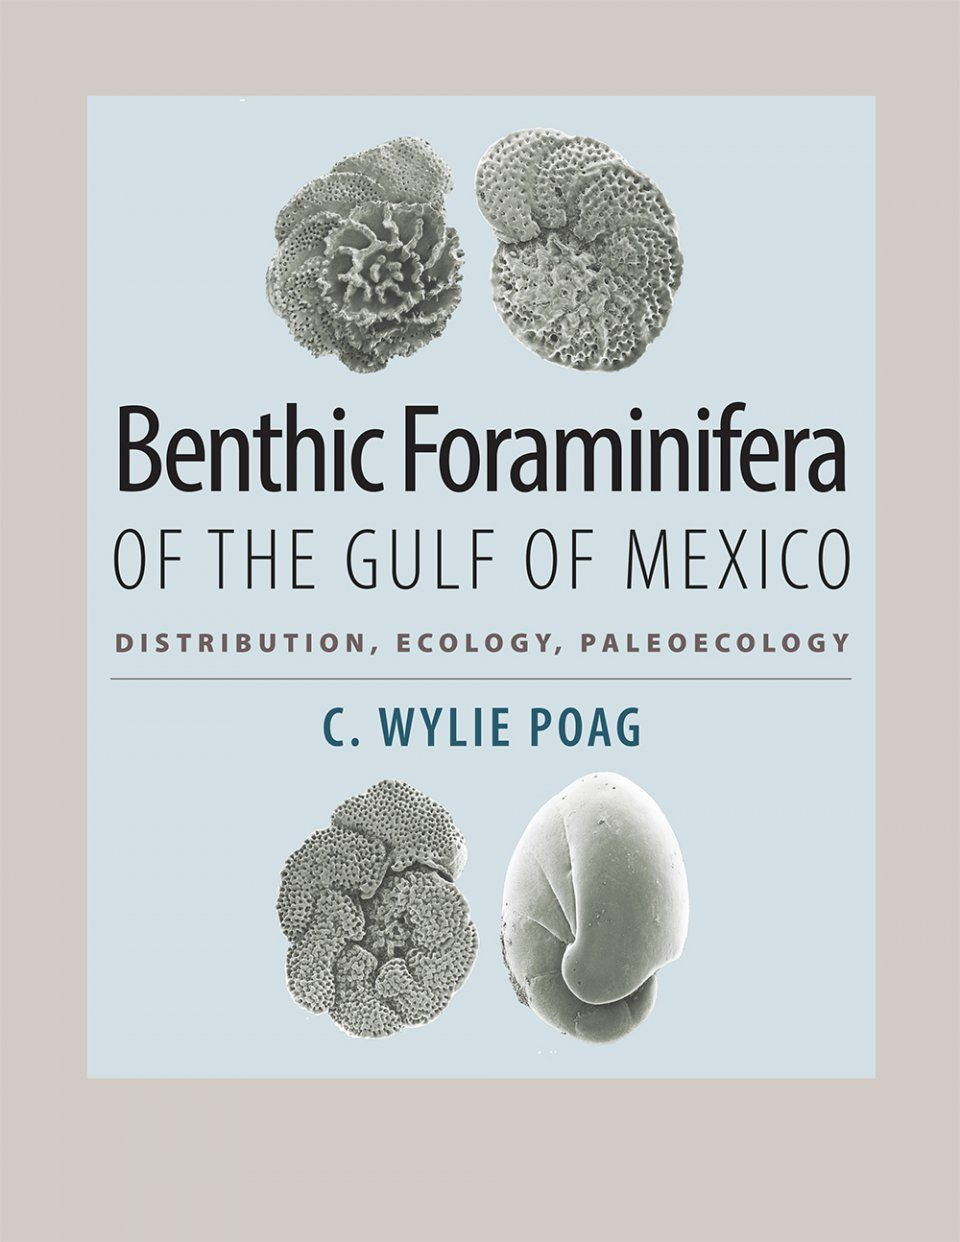 Benthic Foraminifera of the Gulf of Mexico